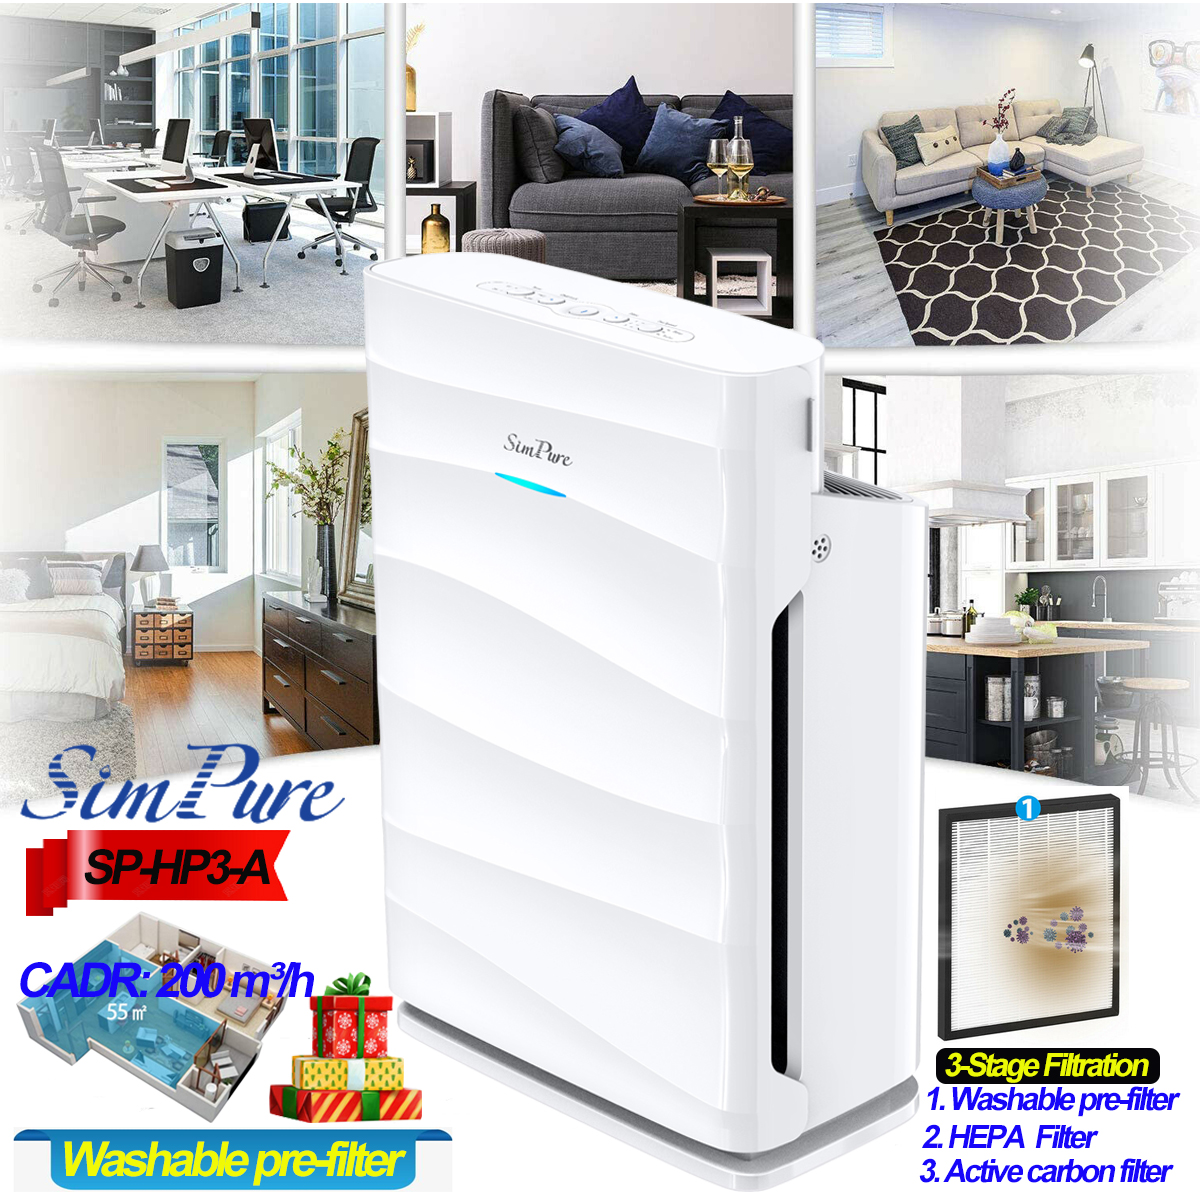 HP3-A Air Purifier Home Large Room w/HEPA Filter,Air Cleaner